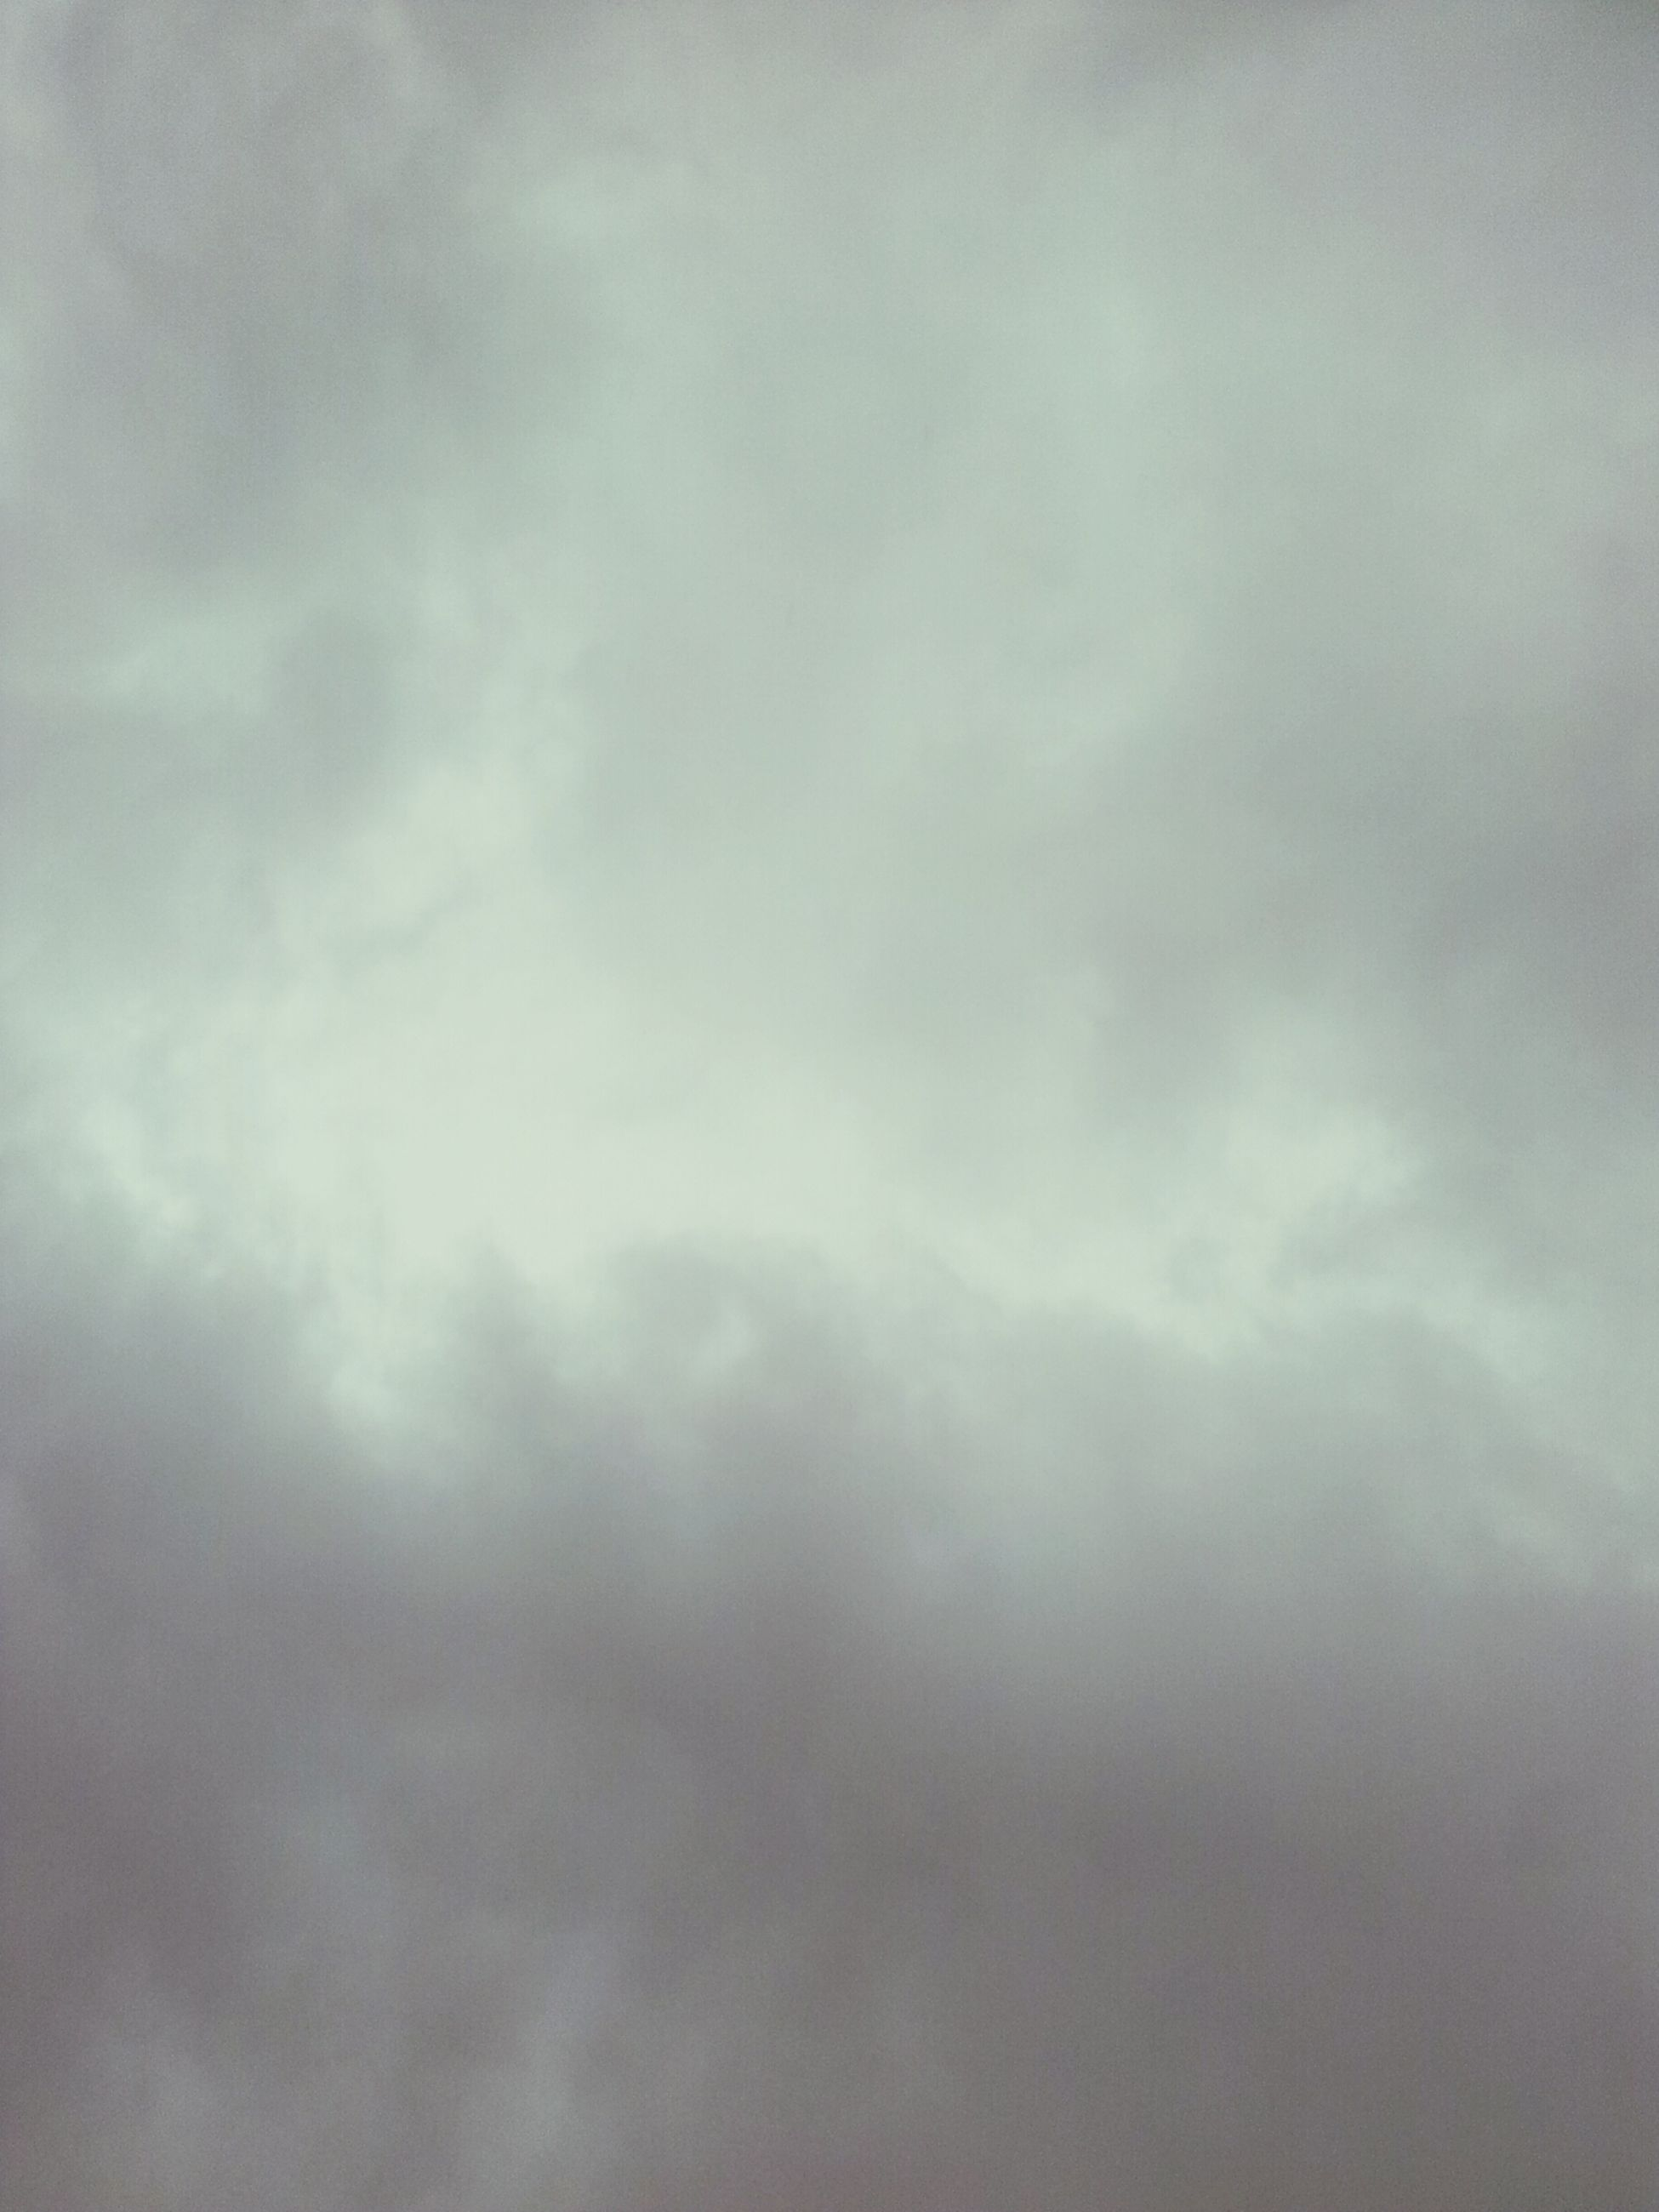 sky, cloud - sky, cloudy, low angle view, weather, tranquility, beauty in nature, nature, overcast, scenics, tranquil scene, cloud, cloudscape, outdoors, idyllic, no people, day, backgrounds, full frame, sky only